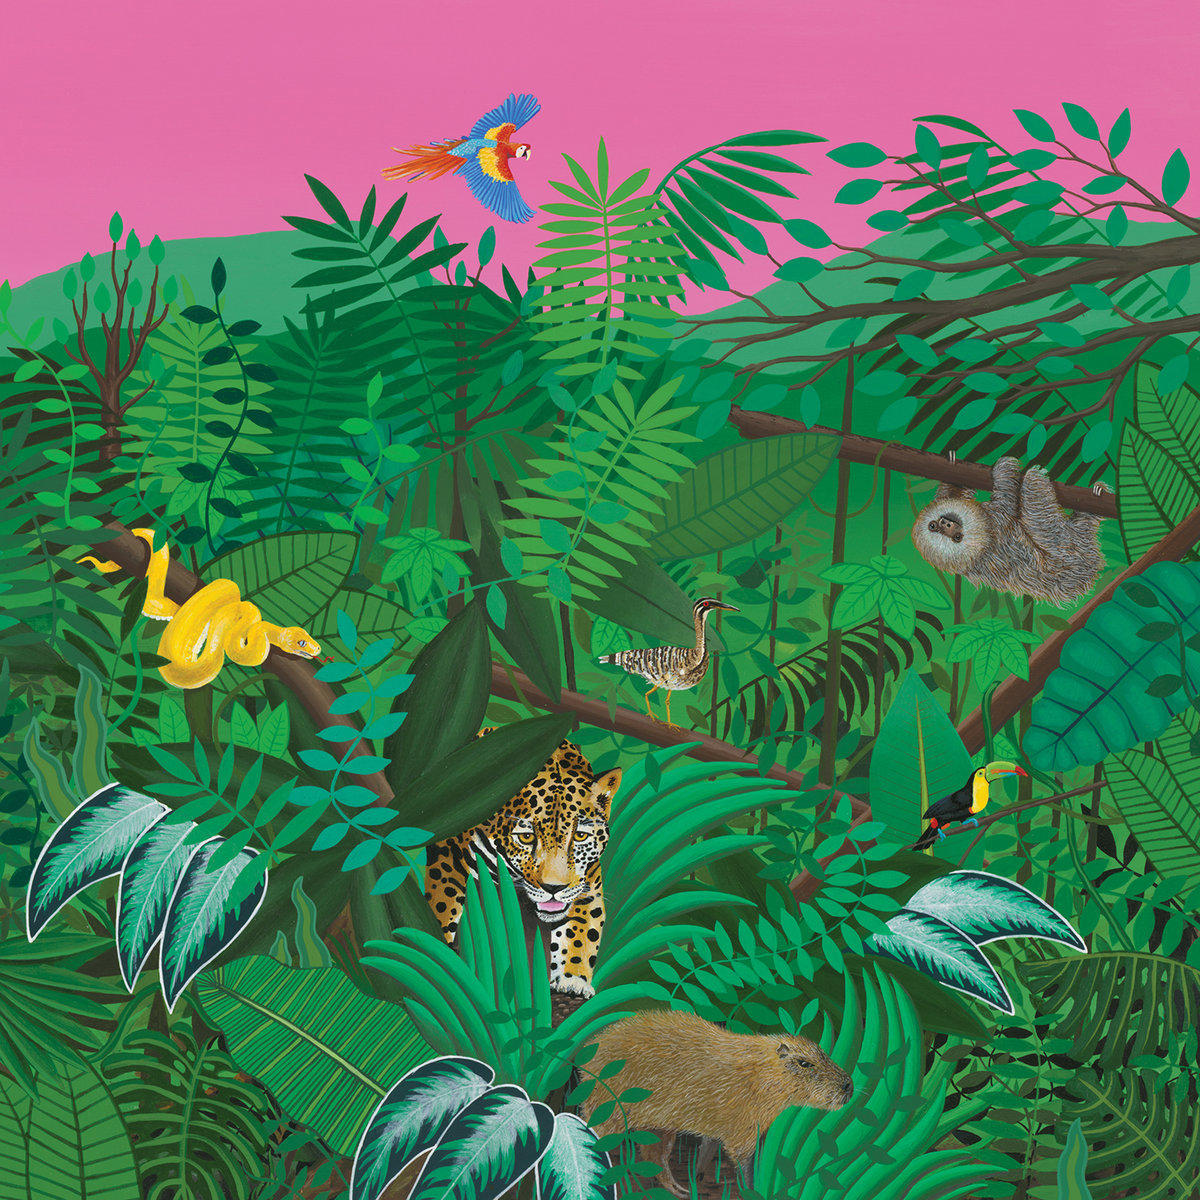 Review of 'Good Nature' by Turnover